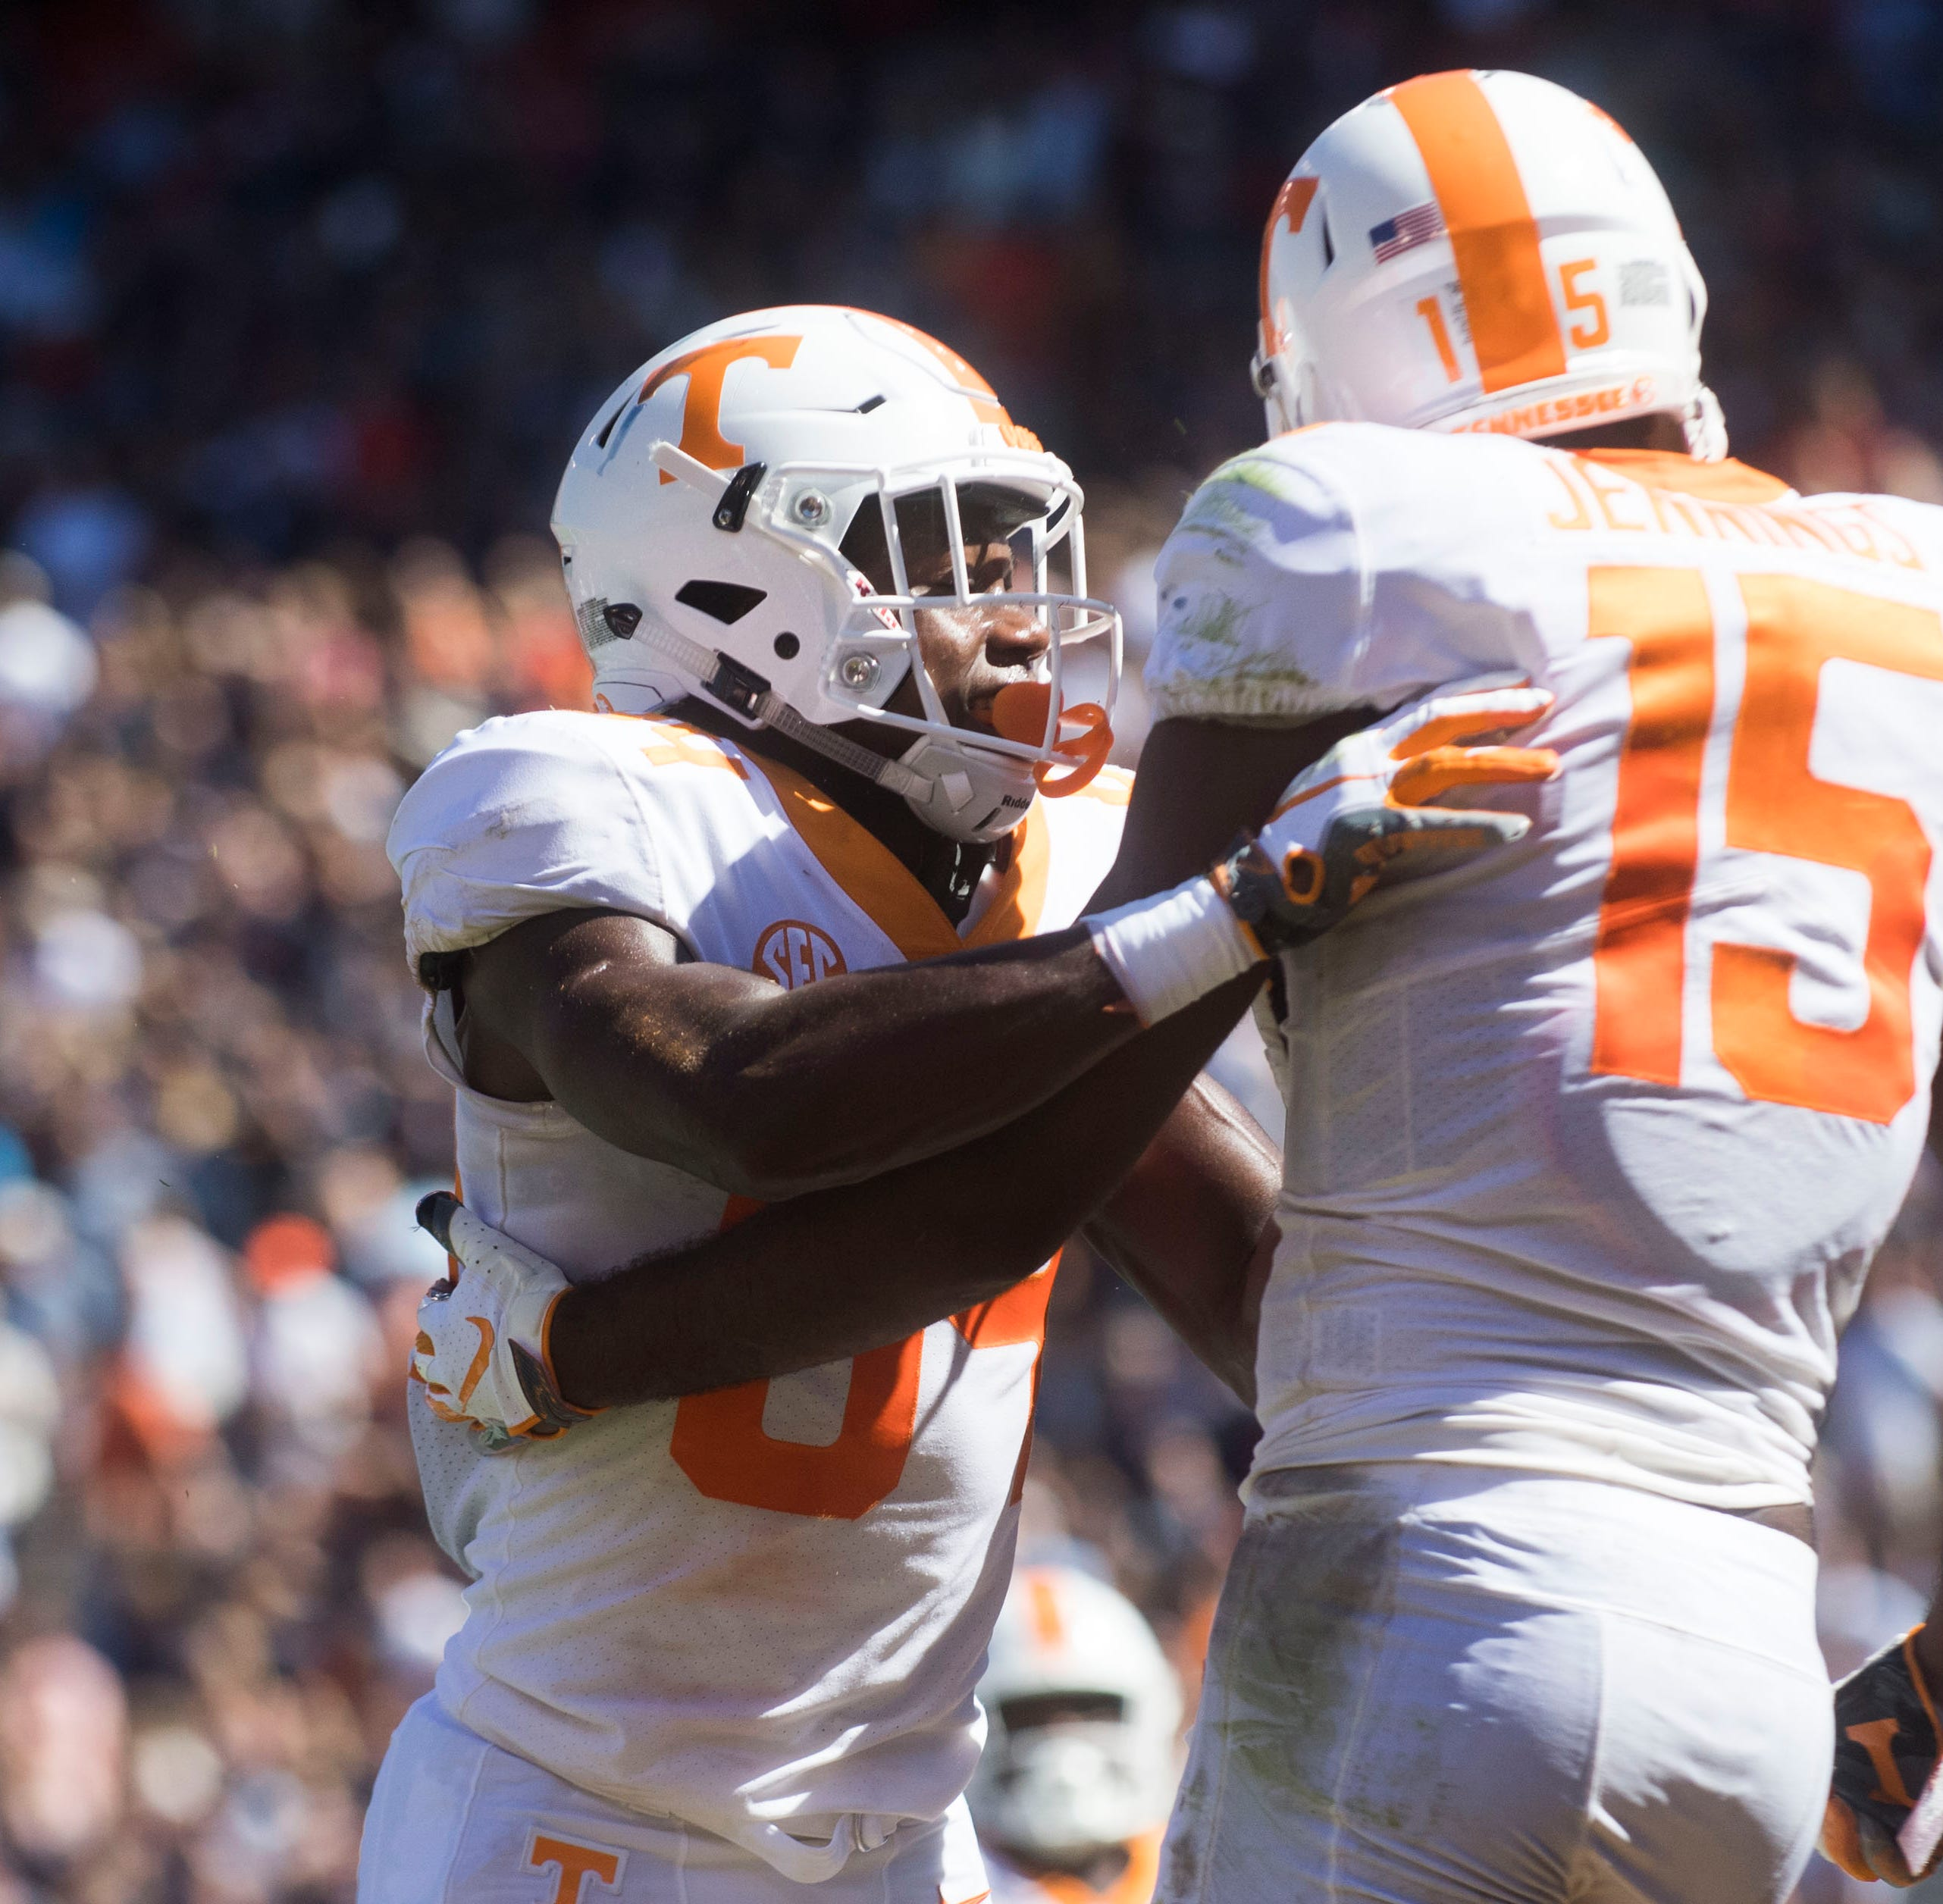 UT Vols: Beating Auburn is 'something we can build on,' but Alabama looms